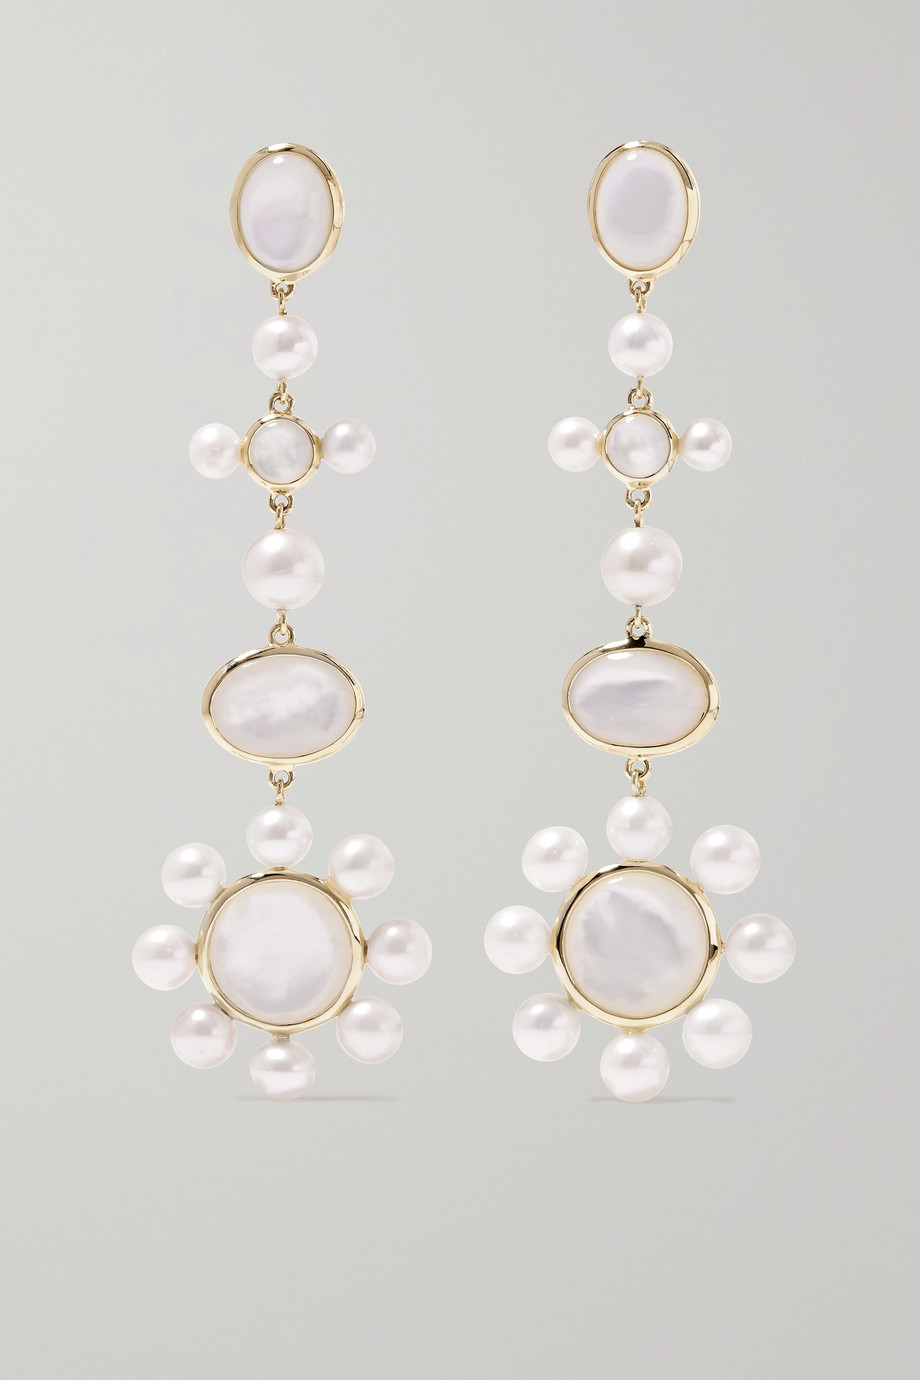 Ippolita Nova medium 18-karat green gold mother-of-pearl earrings